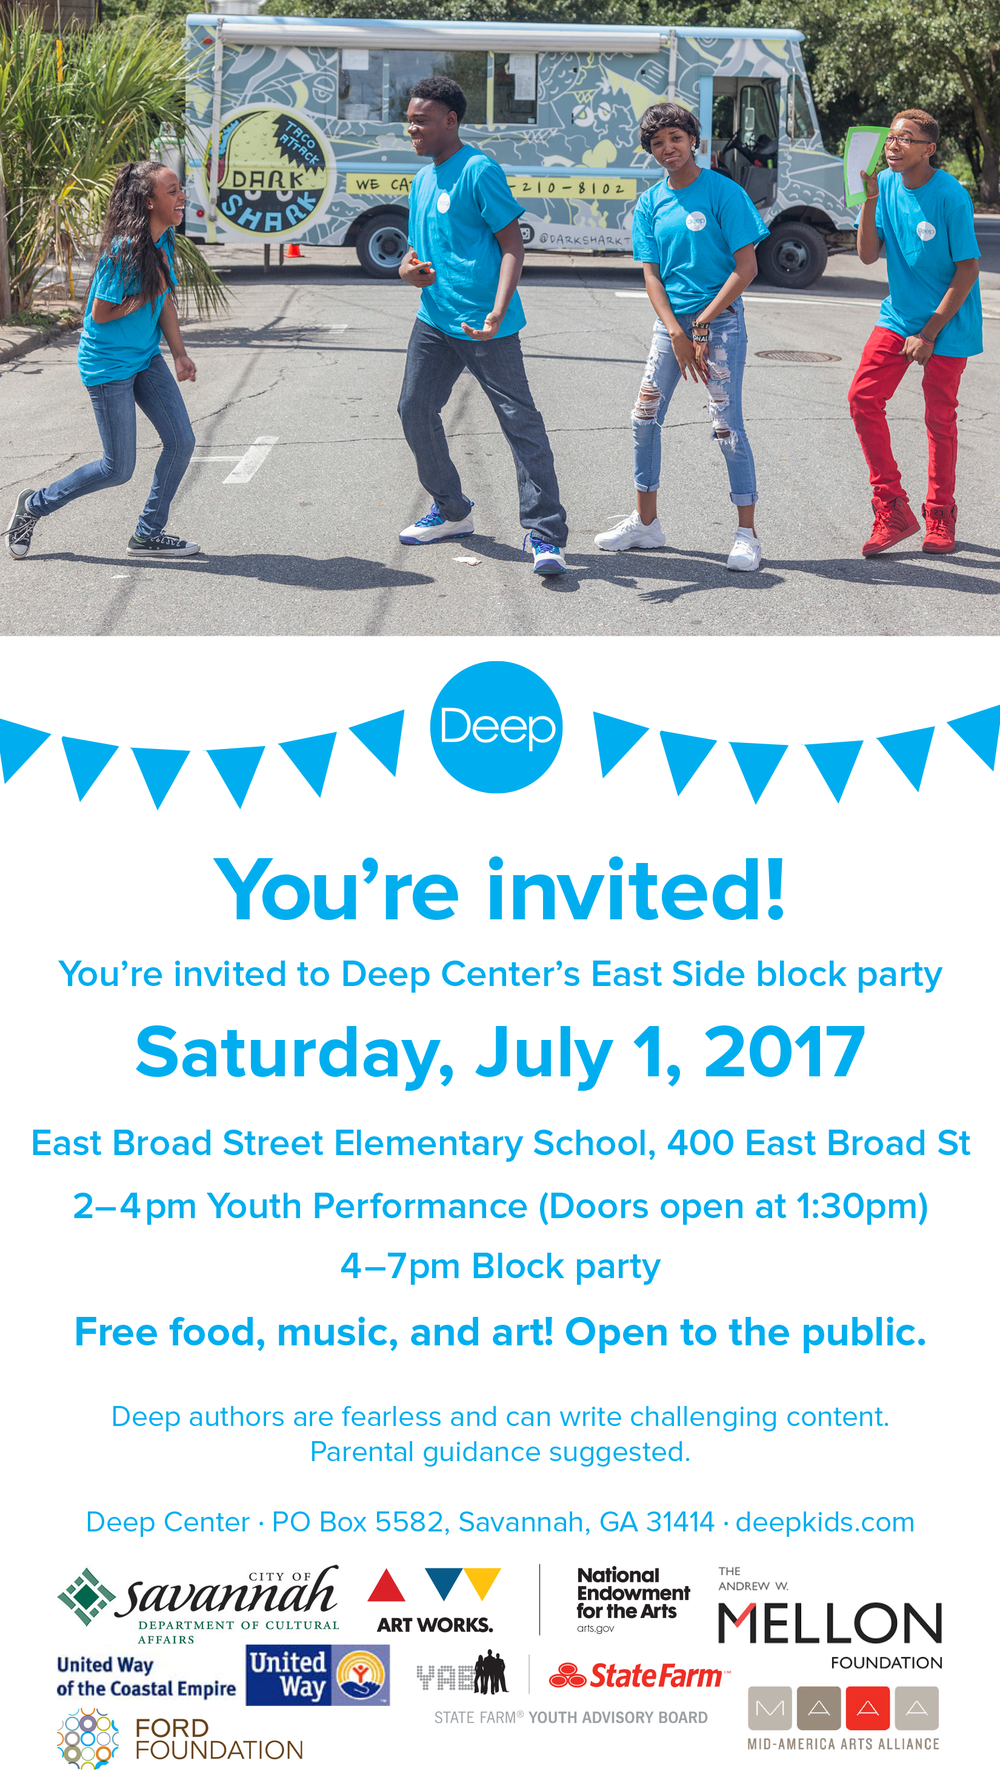 block-party-save-the-date-2016-17-FINAL-web.png